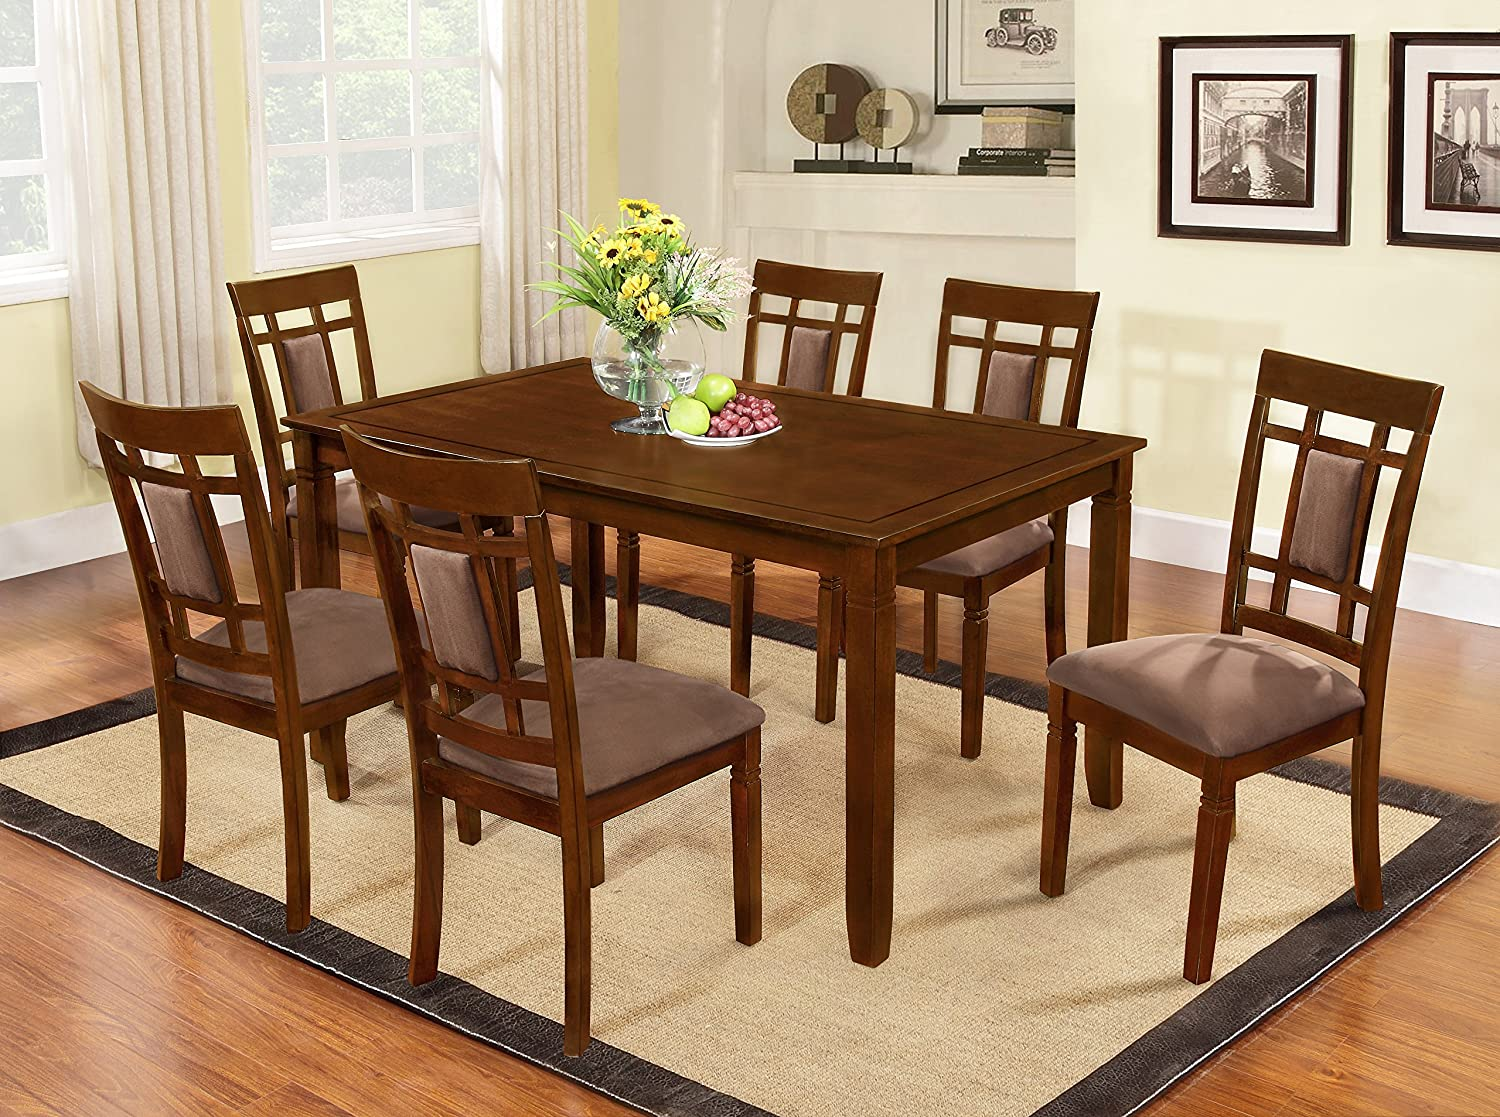 Amazon.com   The Room Style 7 Piece Cherry Finish Solid Wood Dining Table  Set   Table U0026 Chair Sets